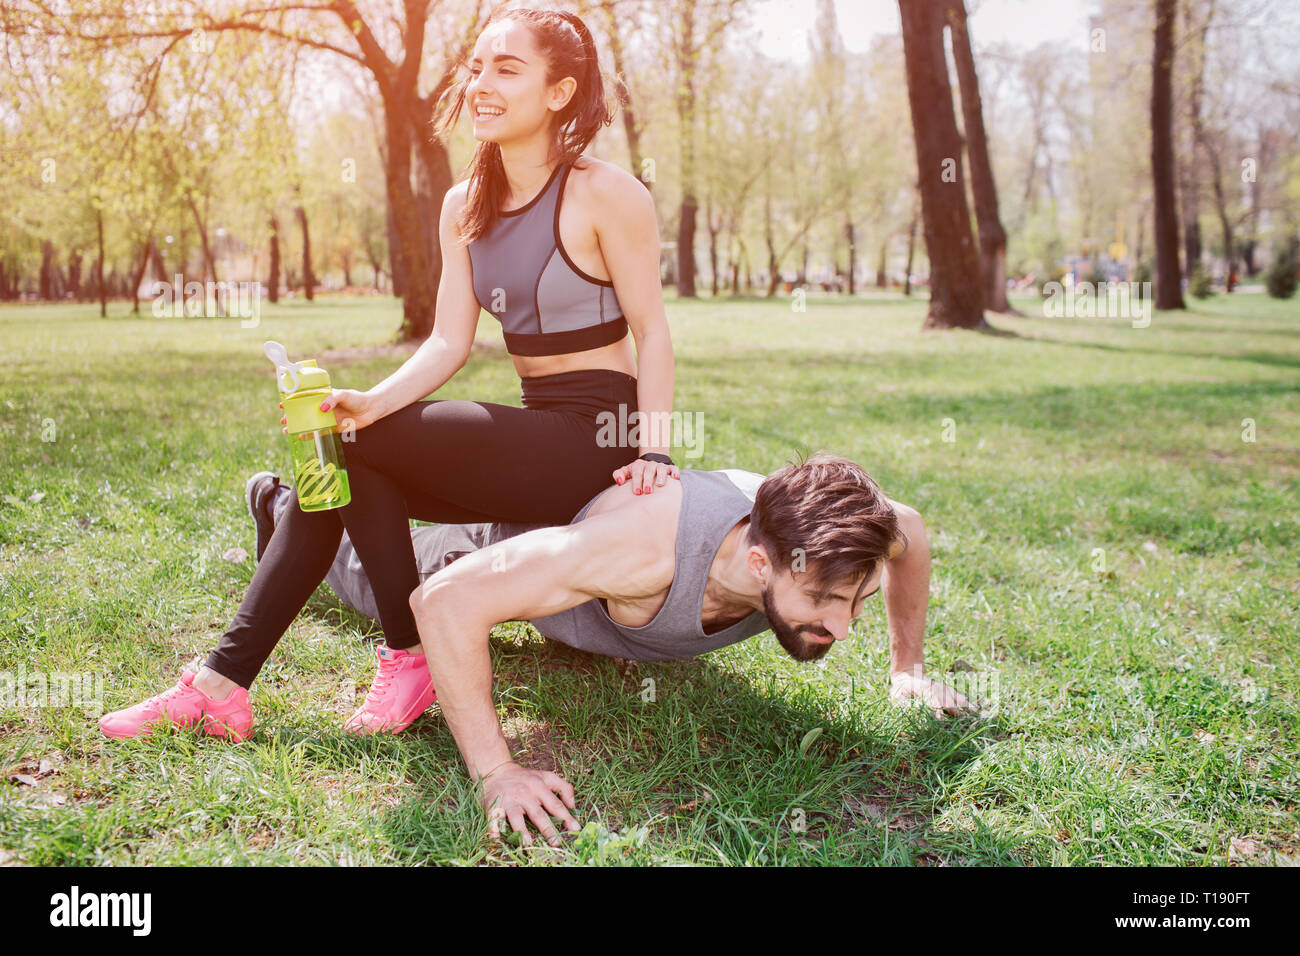 Funny picture of young man and woman. He is doing push ups and looking straight while she is sitting at him and laughing. Also girl is holding a bottl - Stock Image